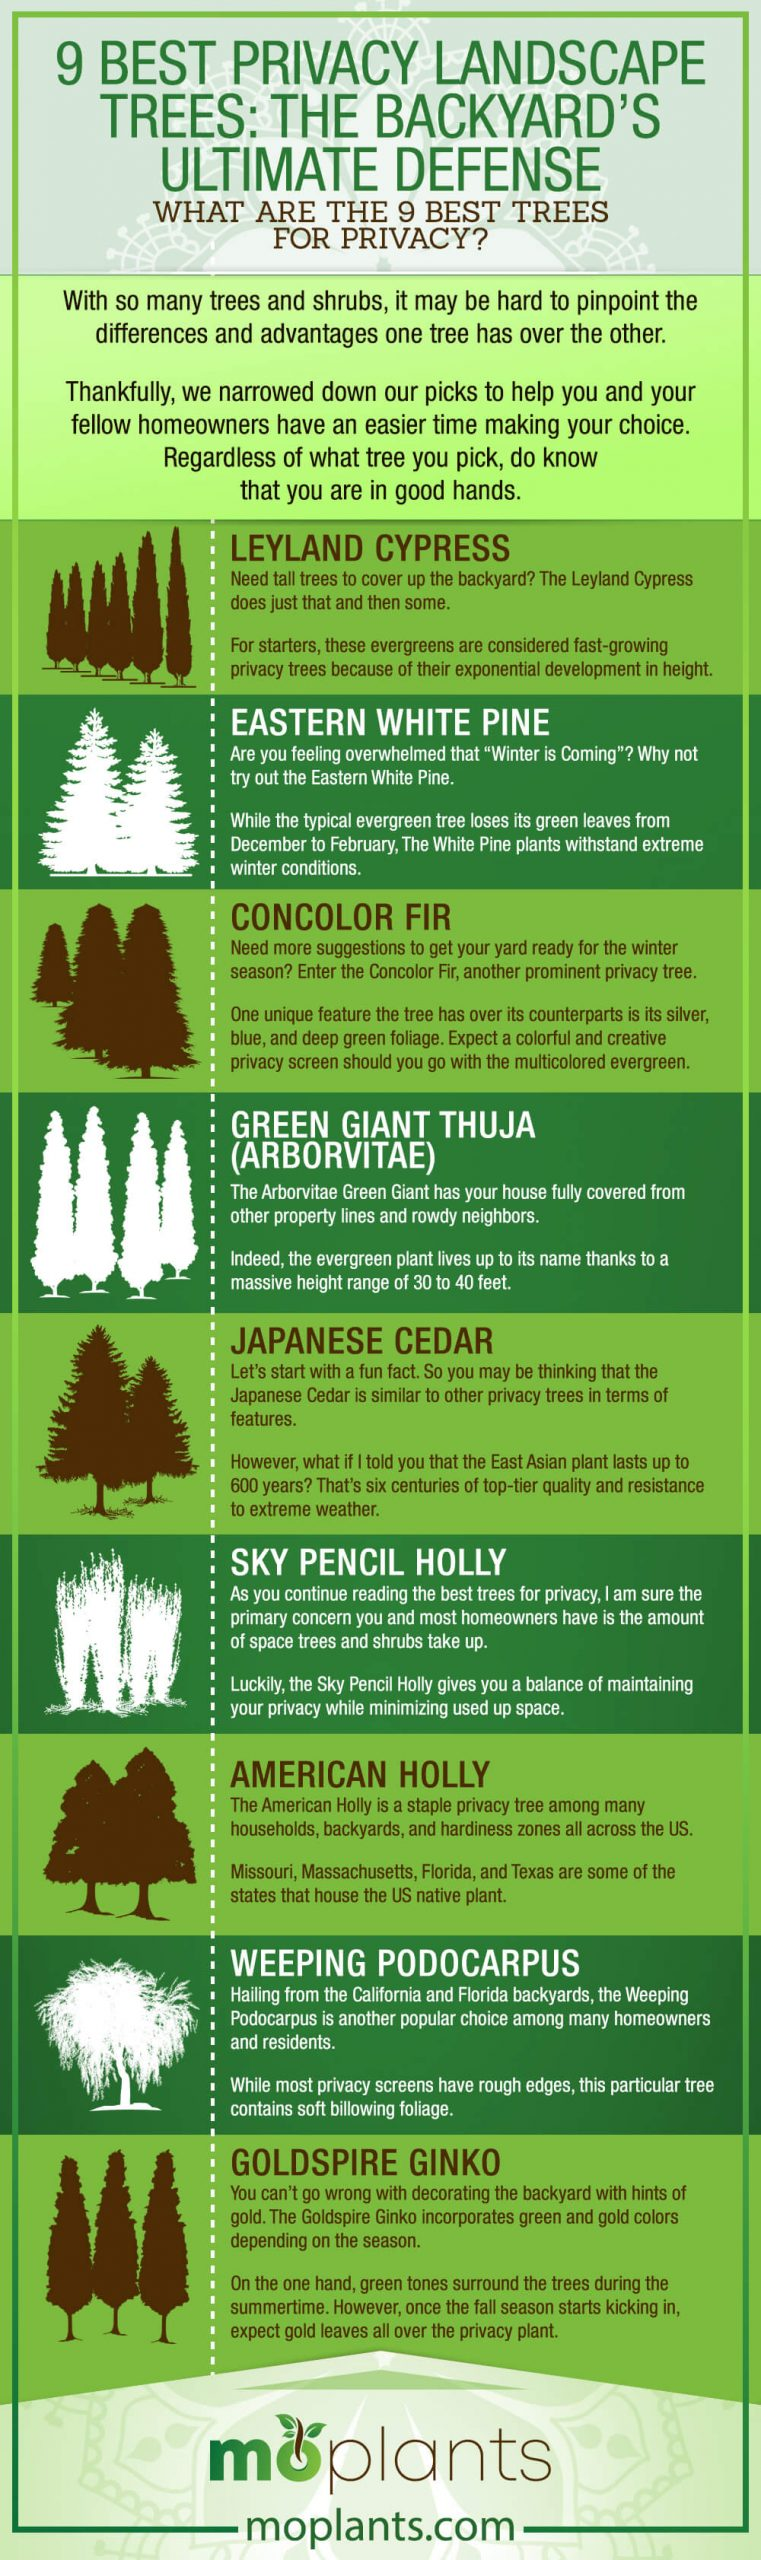 9 Best Privacy Landscape Trees The Backyard S Ultimate Defense Mo Plants